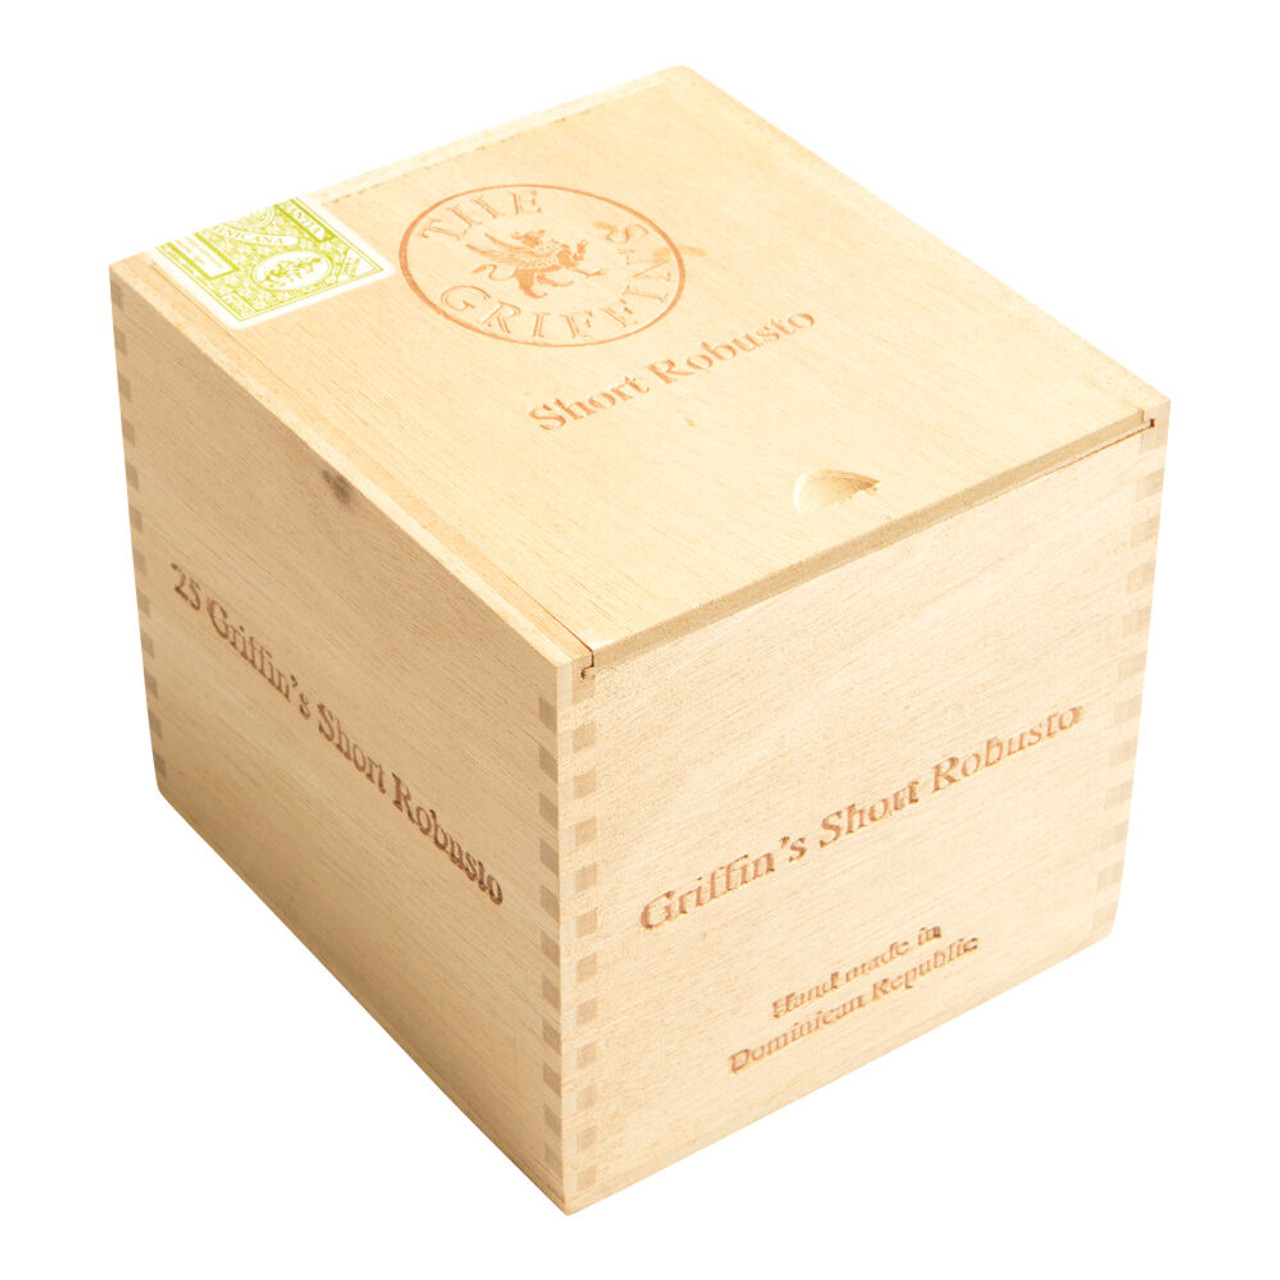 The Griffin's Robusto Tubo Cigars - 5 x 50 (Box of 20)